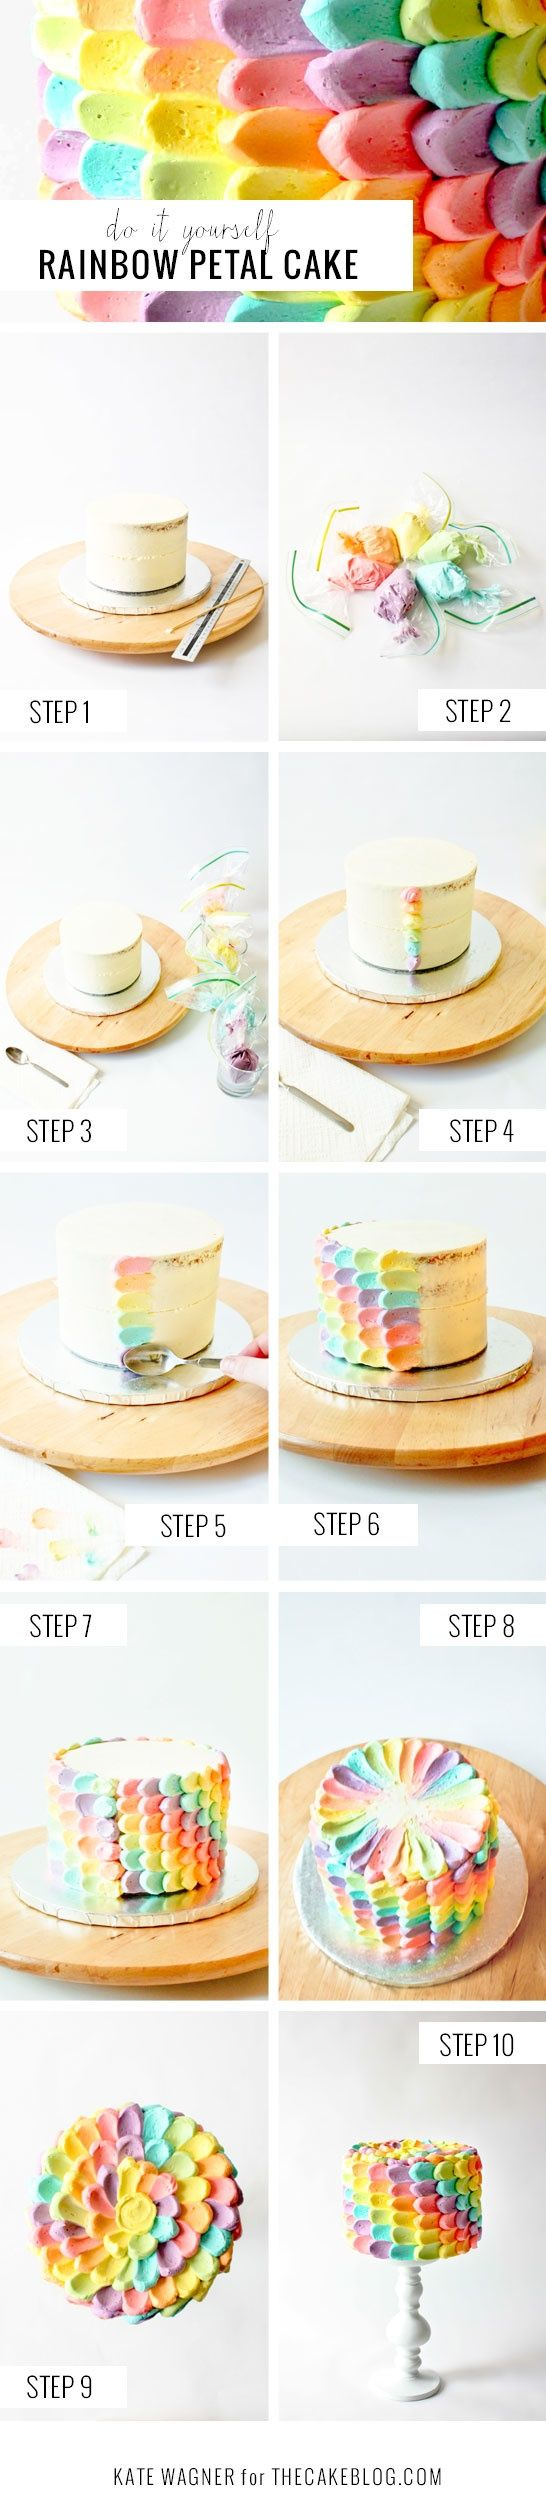 Step-by-step guide to icing a cake so beautifully!